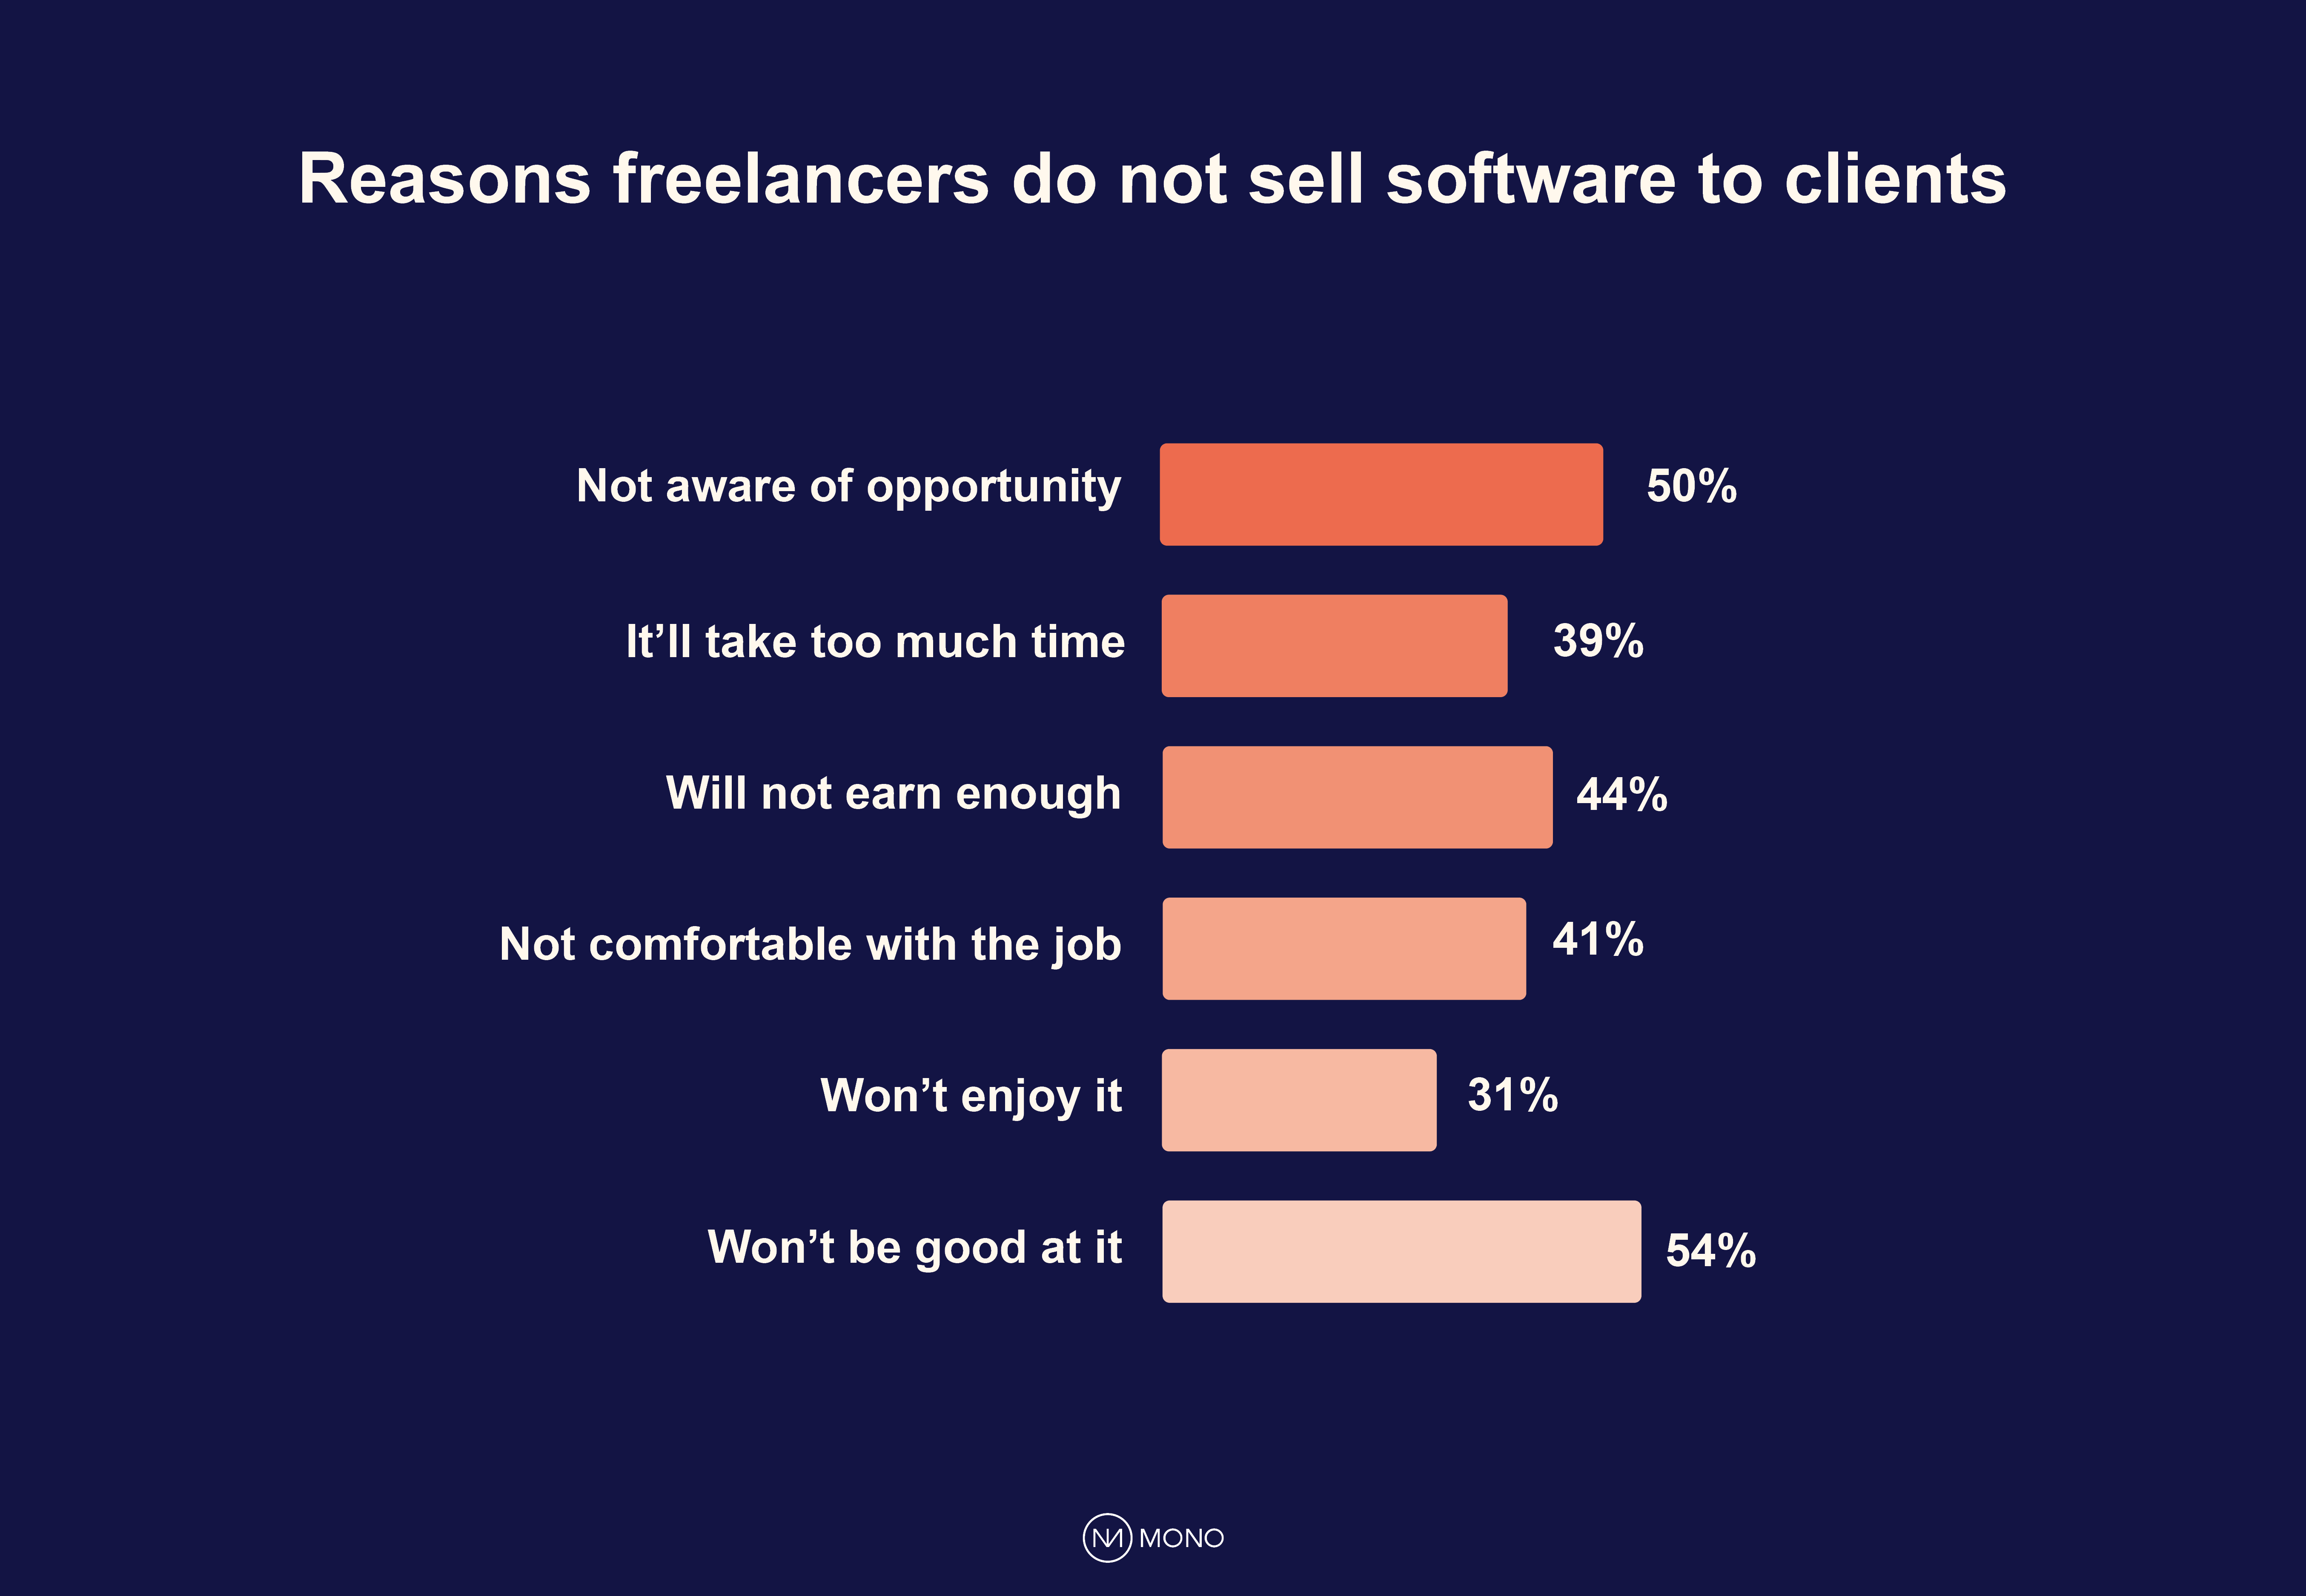 Reasons freelancers do not sell software to clients